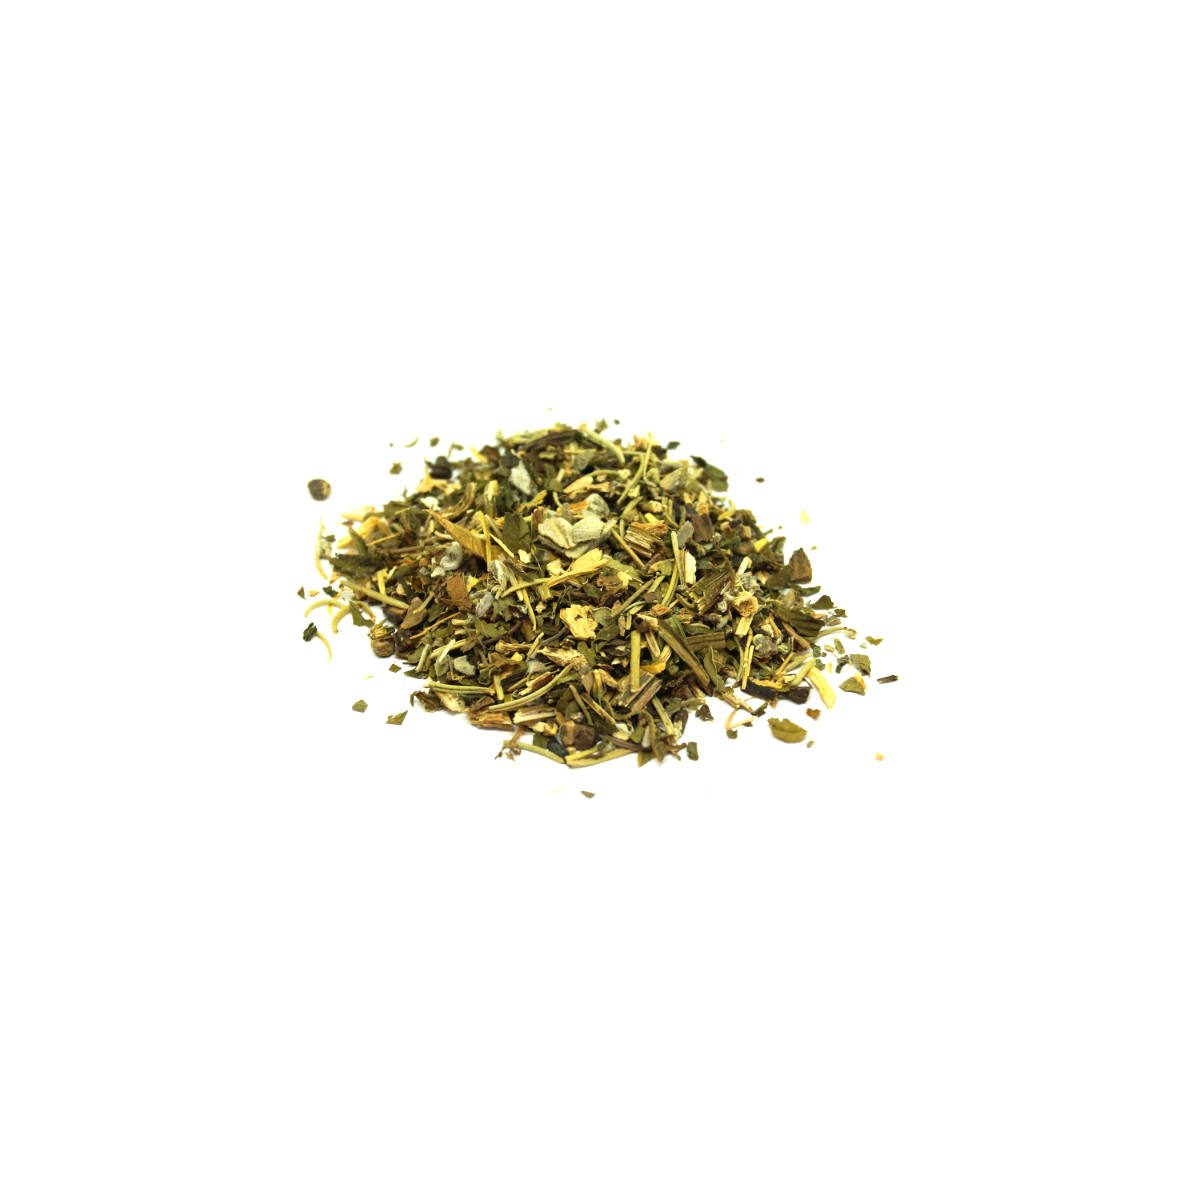 photo of loose herbs of peppermint, comfrey root and motherwort